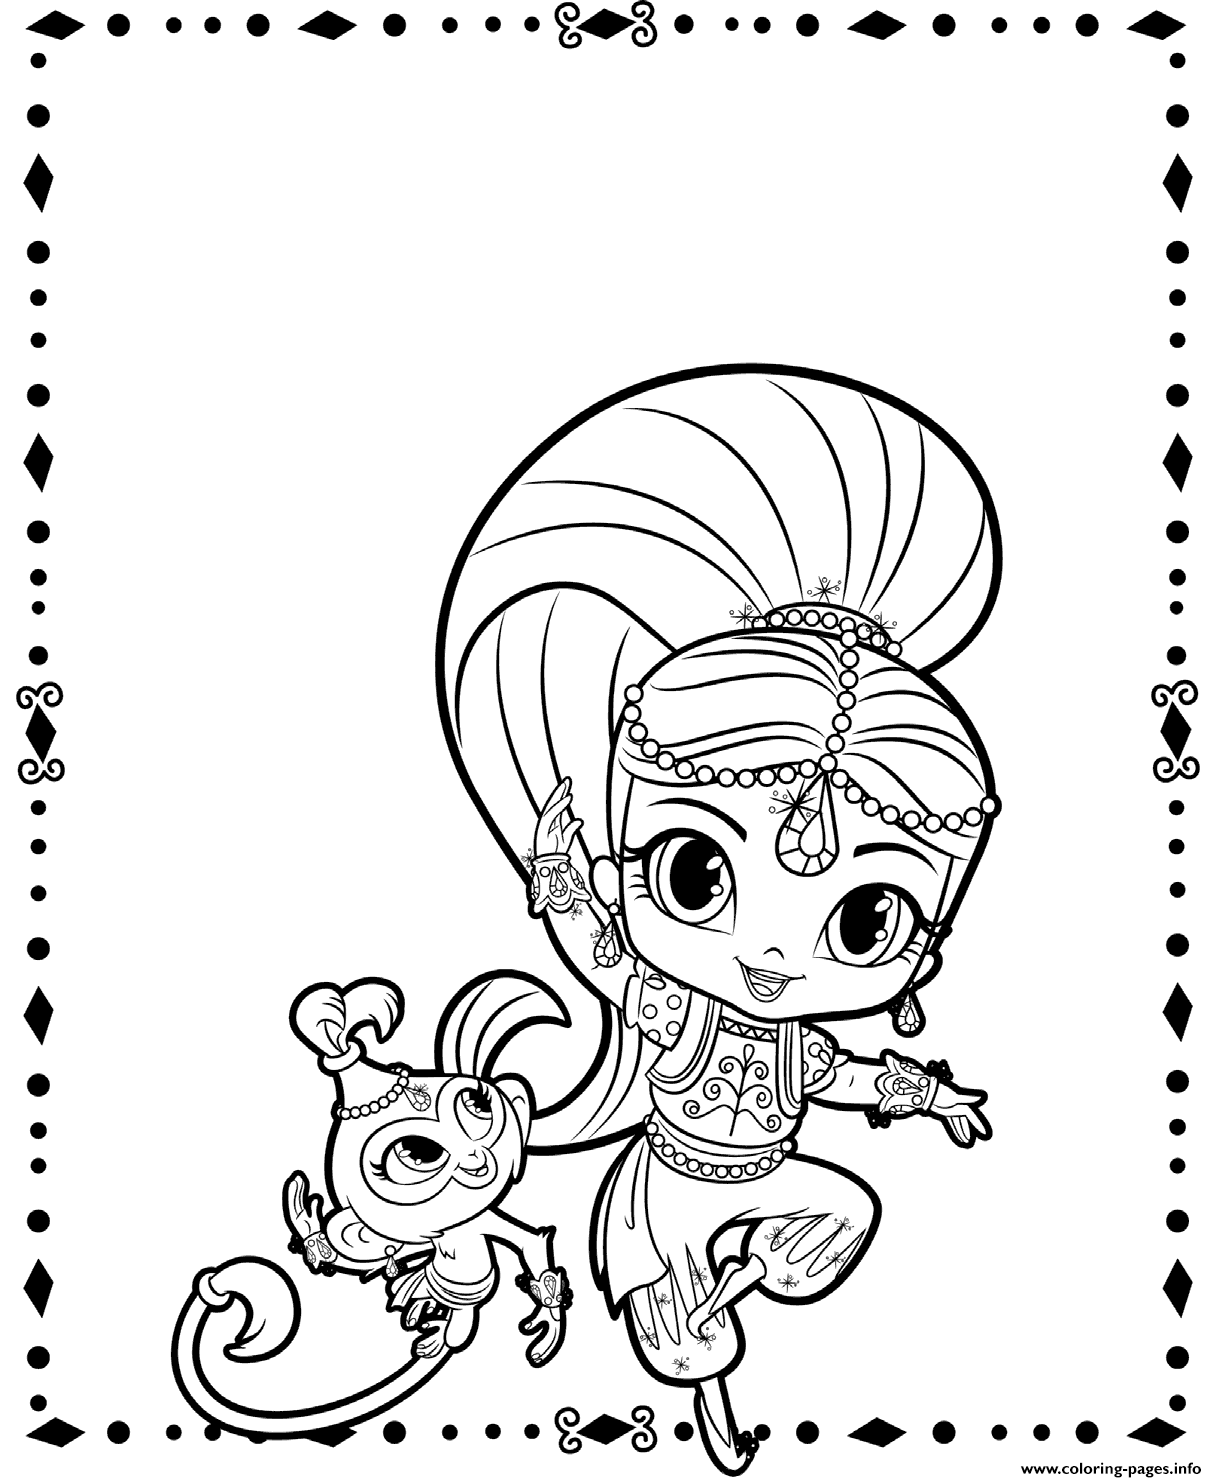 Printable coloring pages shimmer and shine - Printable Coloring Pages Shimmer And Shine 47